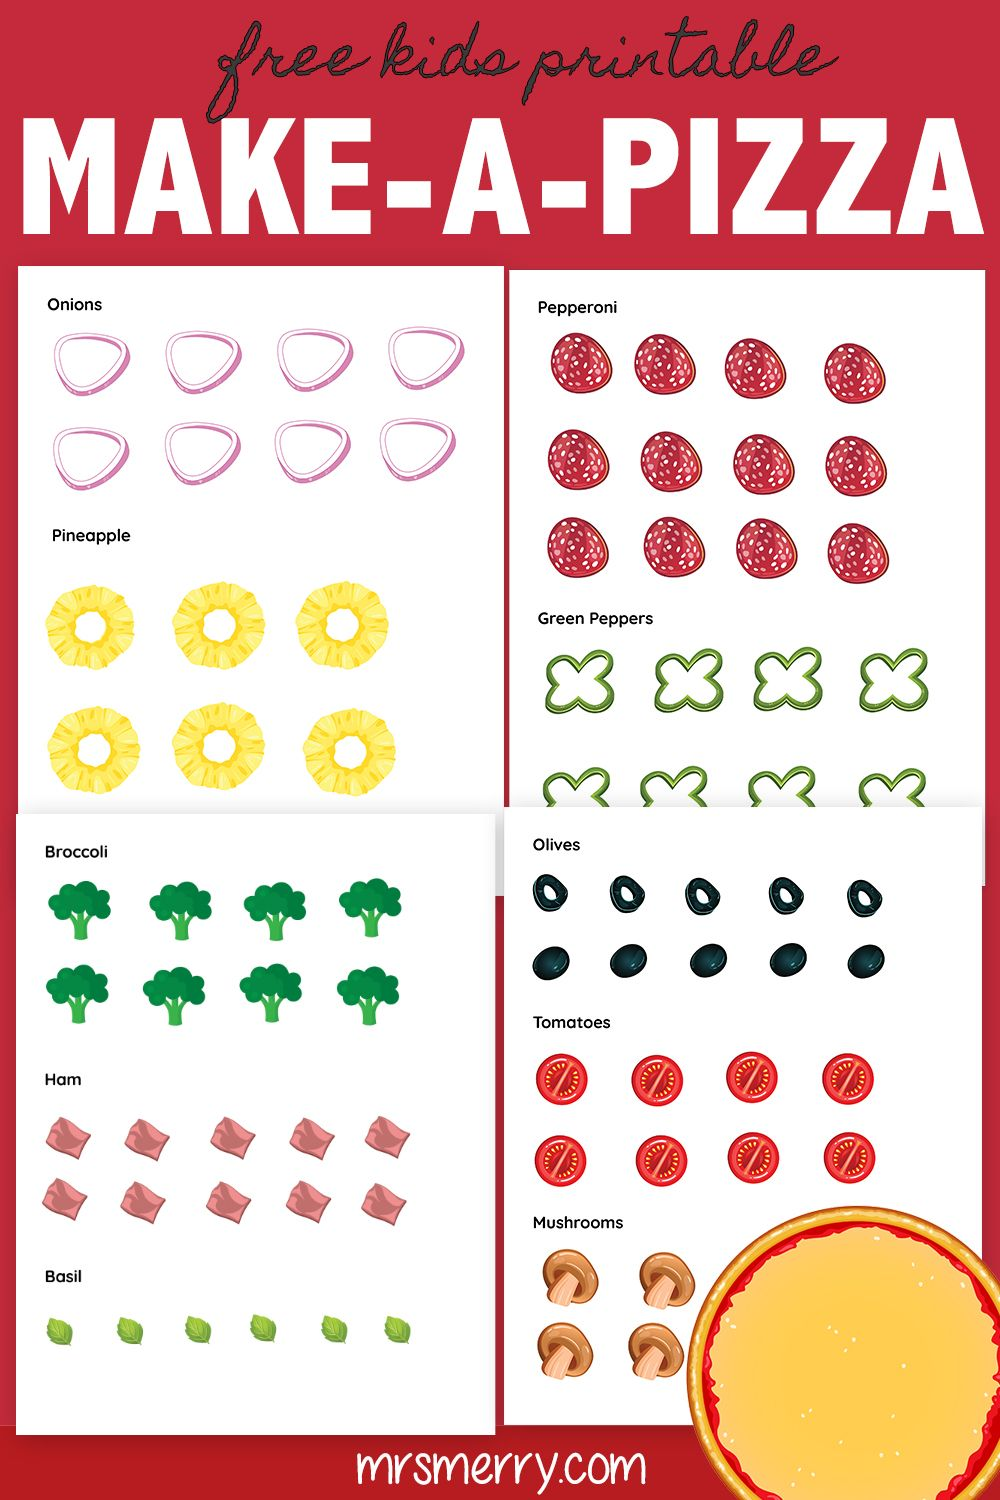 Free Kids Printable Activities Build A Pizza Rainy Day Activity Mrs Merr Printable Activities For Kids Diy Crafts For Kids Easy Free Activities For Kids [ 1500 x 1000 Pixel ]